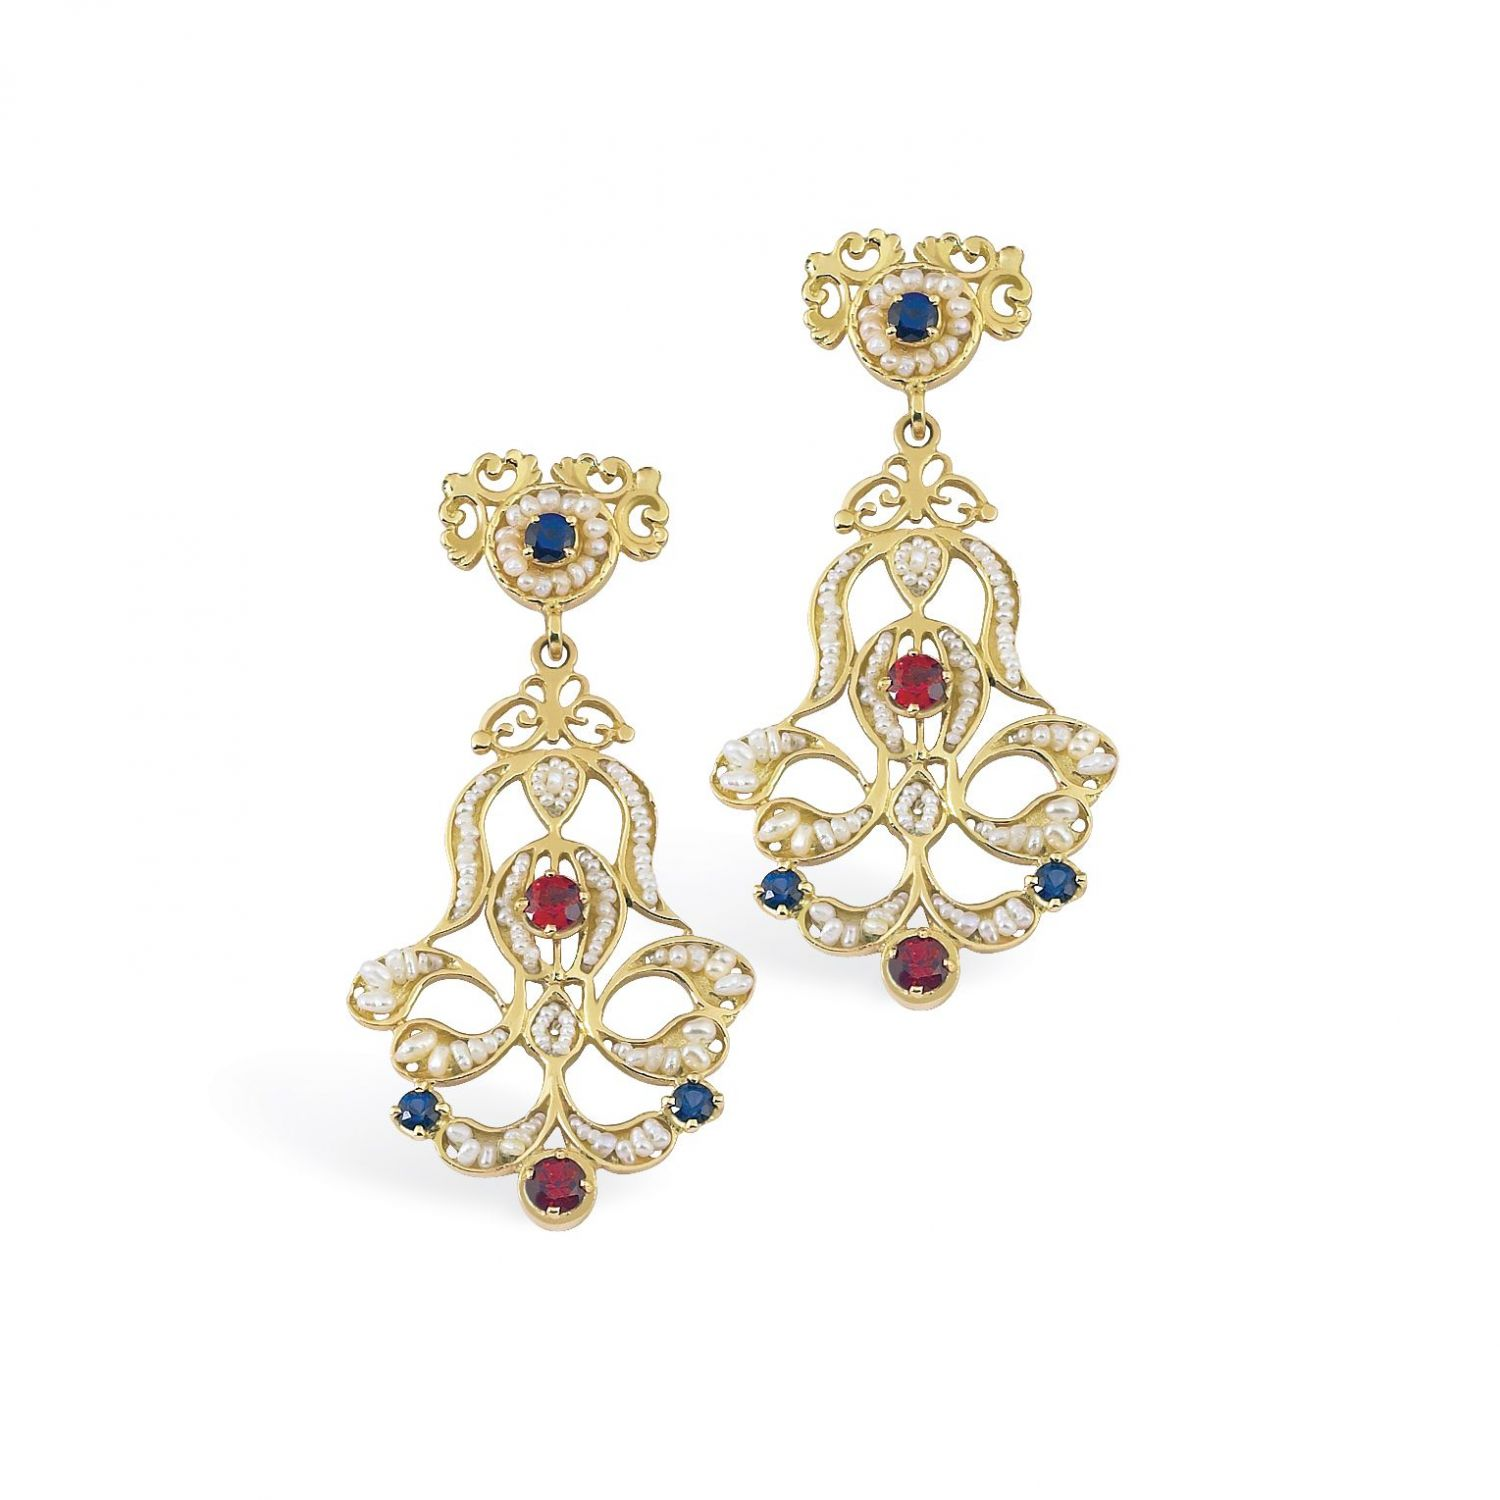 Gold Pendant Earrings with Pearls and precious Stones (14157)